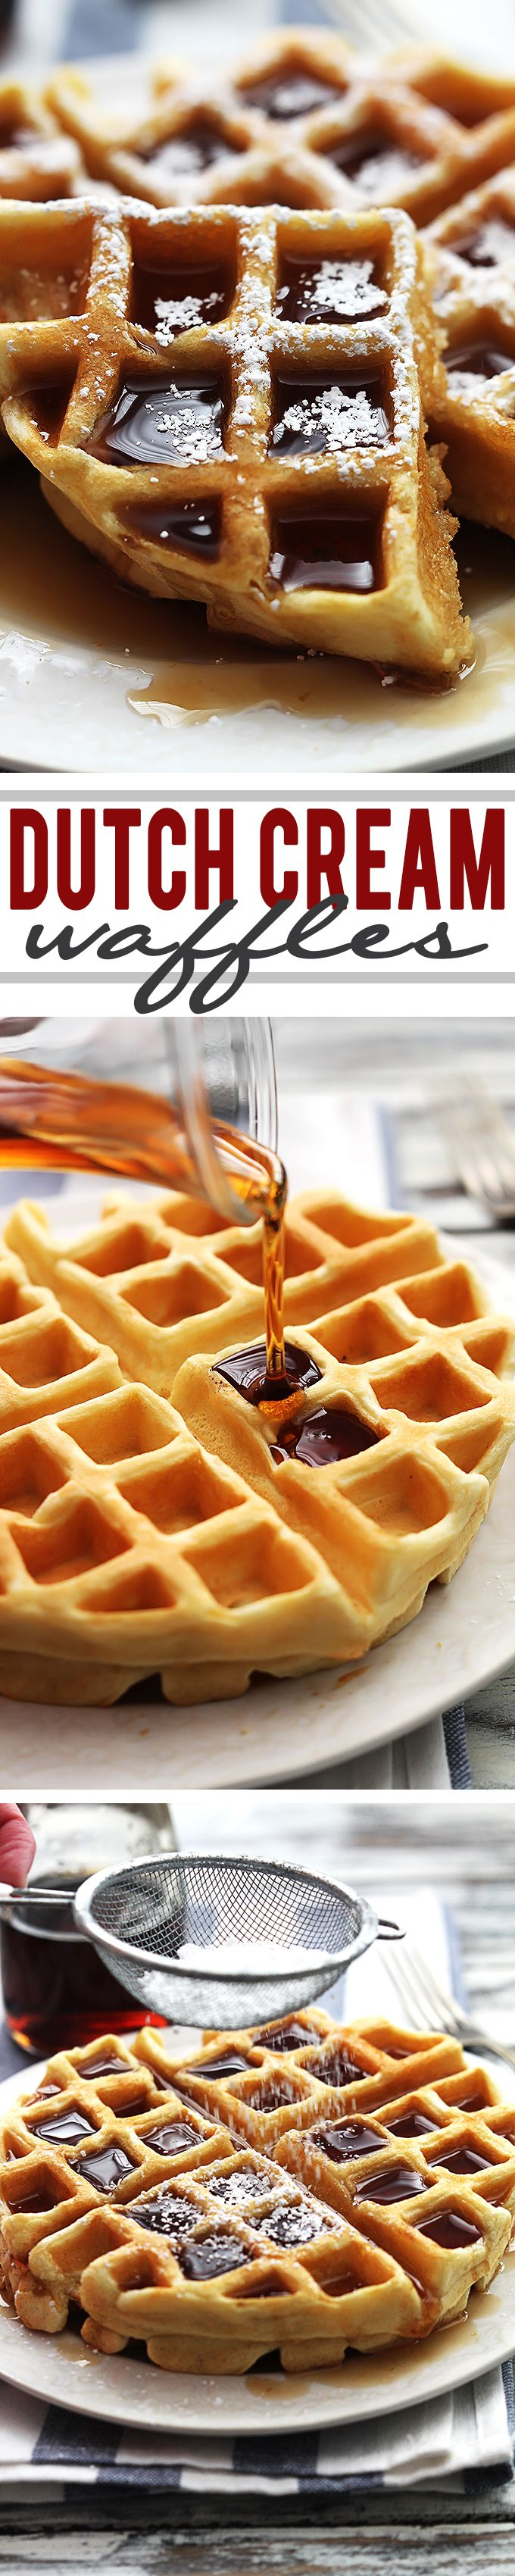 Super fluffy and rich dutch cream waffles – JUST 4 INGREDIENTS!